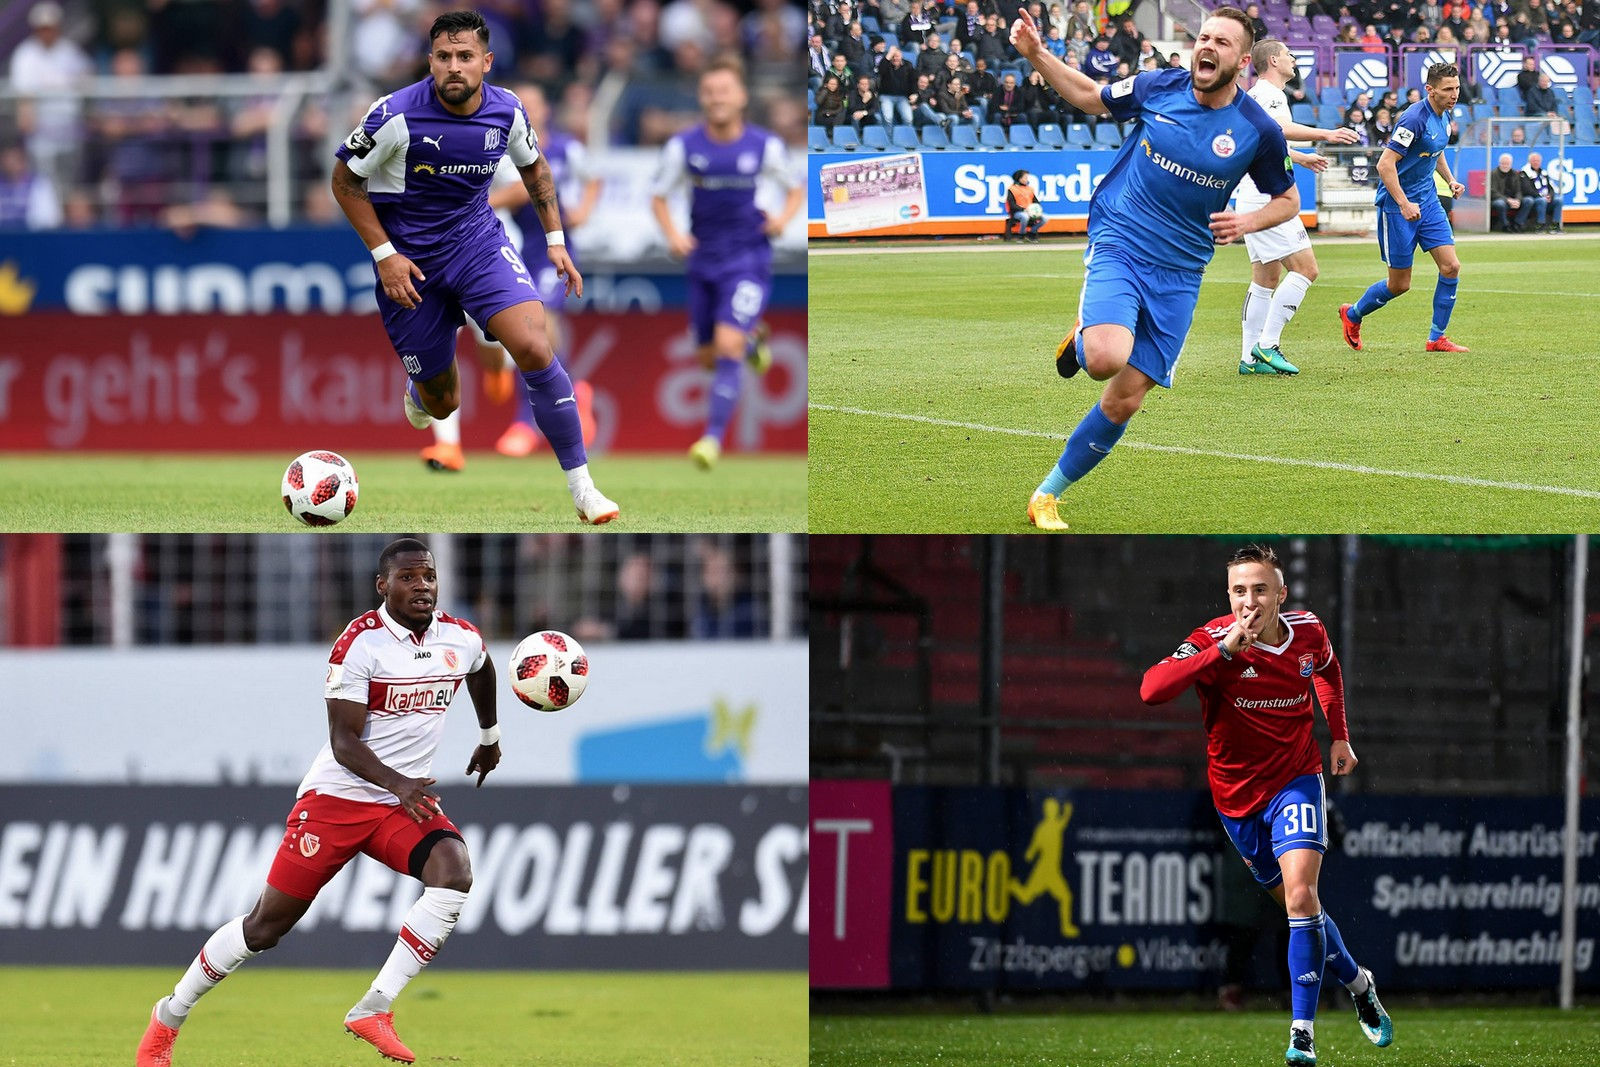 Collage zur 3. Liga